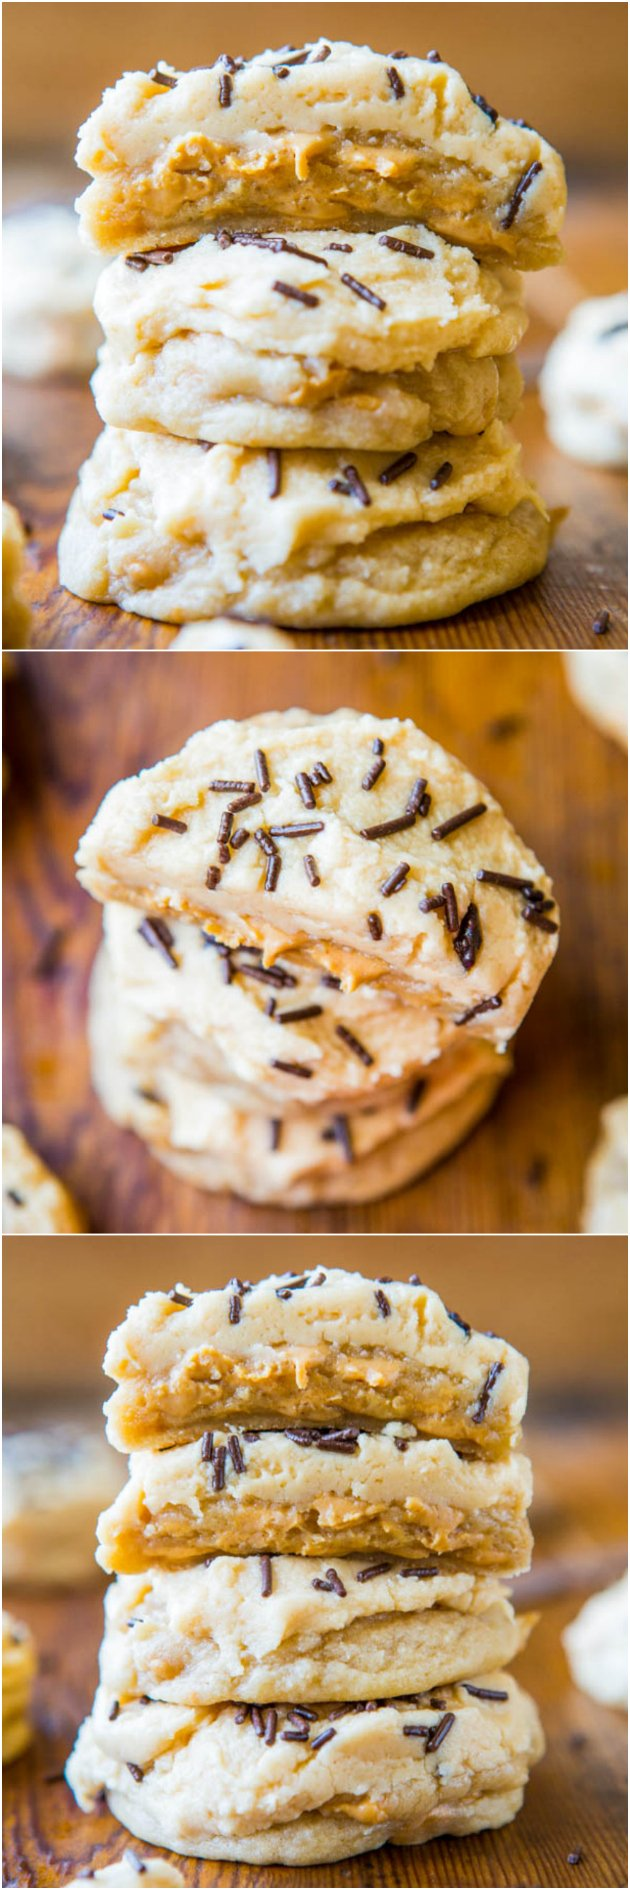 Lofthouse-Style Soft Peanut Butter Chip Sugar Cookies with Peanut Butter Frosting - Same soft texture as real Lofthouse cookies, but with PEANUT BUTTER! Easy recipe at averiecooks.com